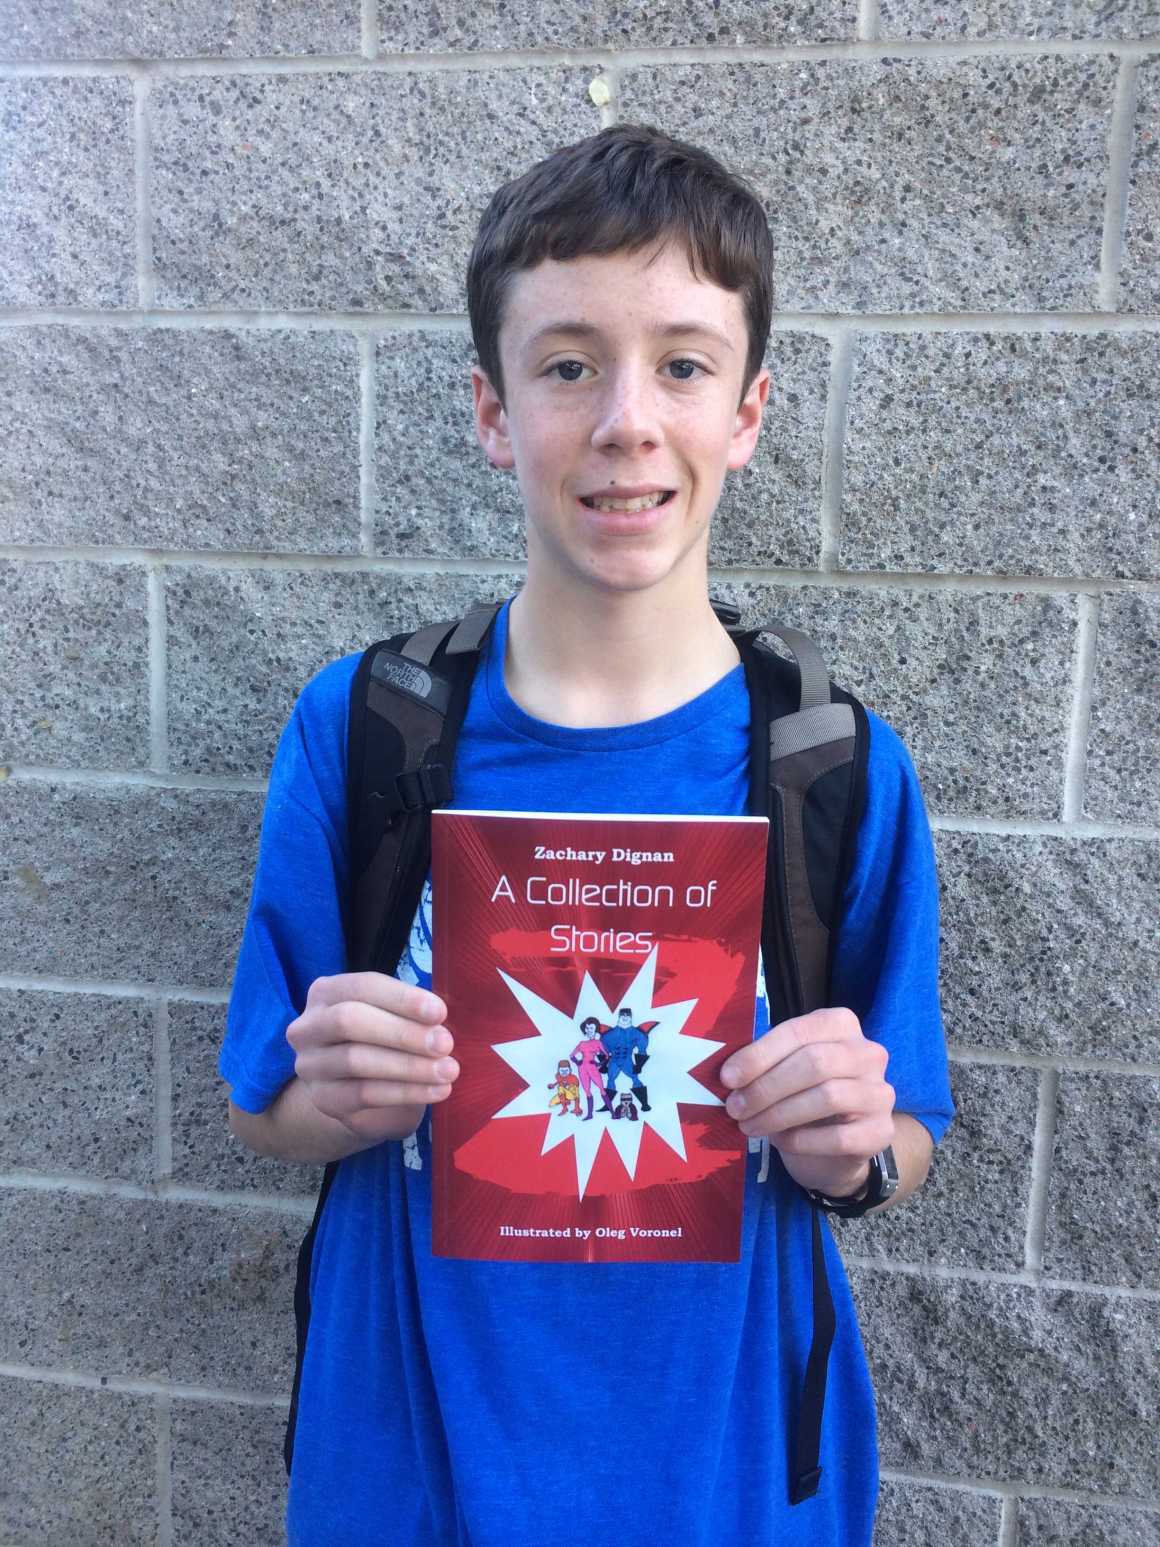 Zachary Dignan and his short story collection